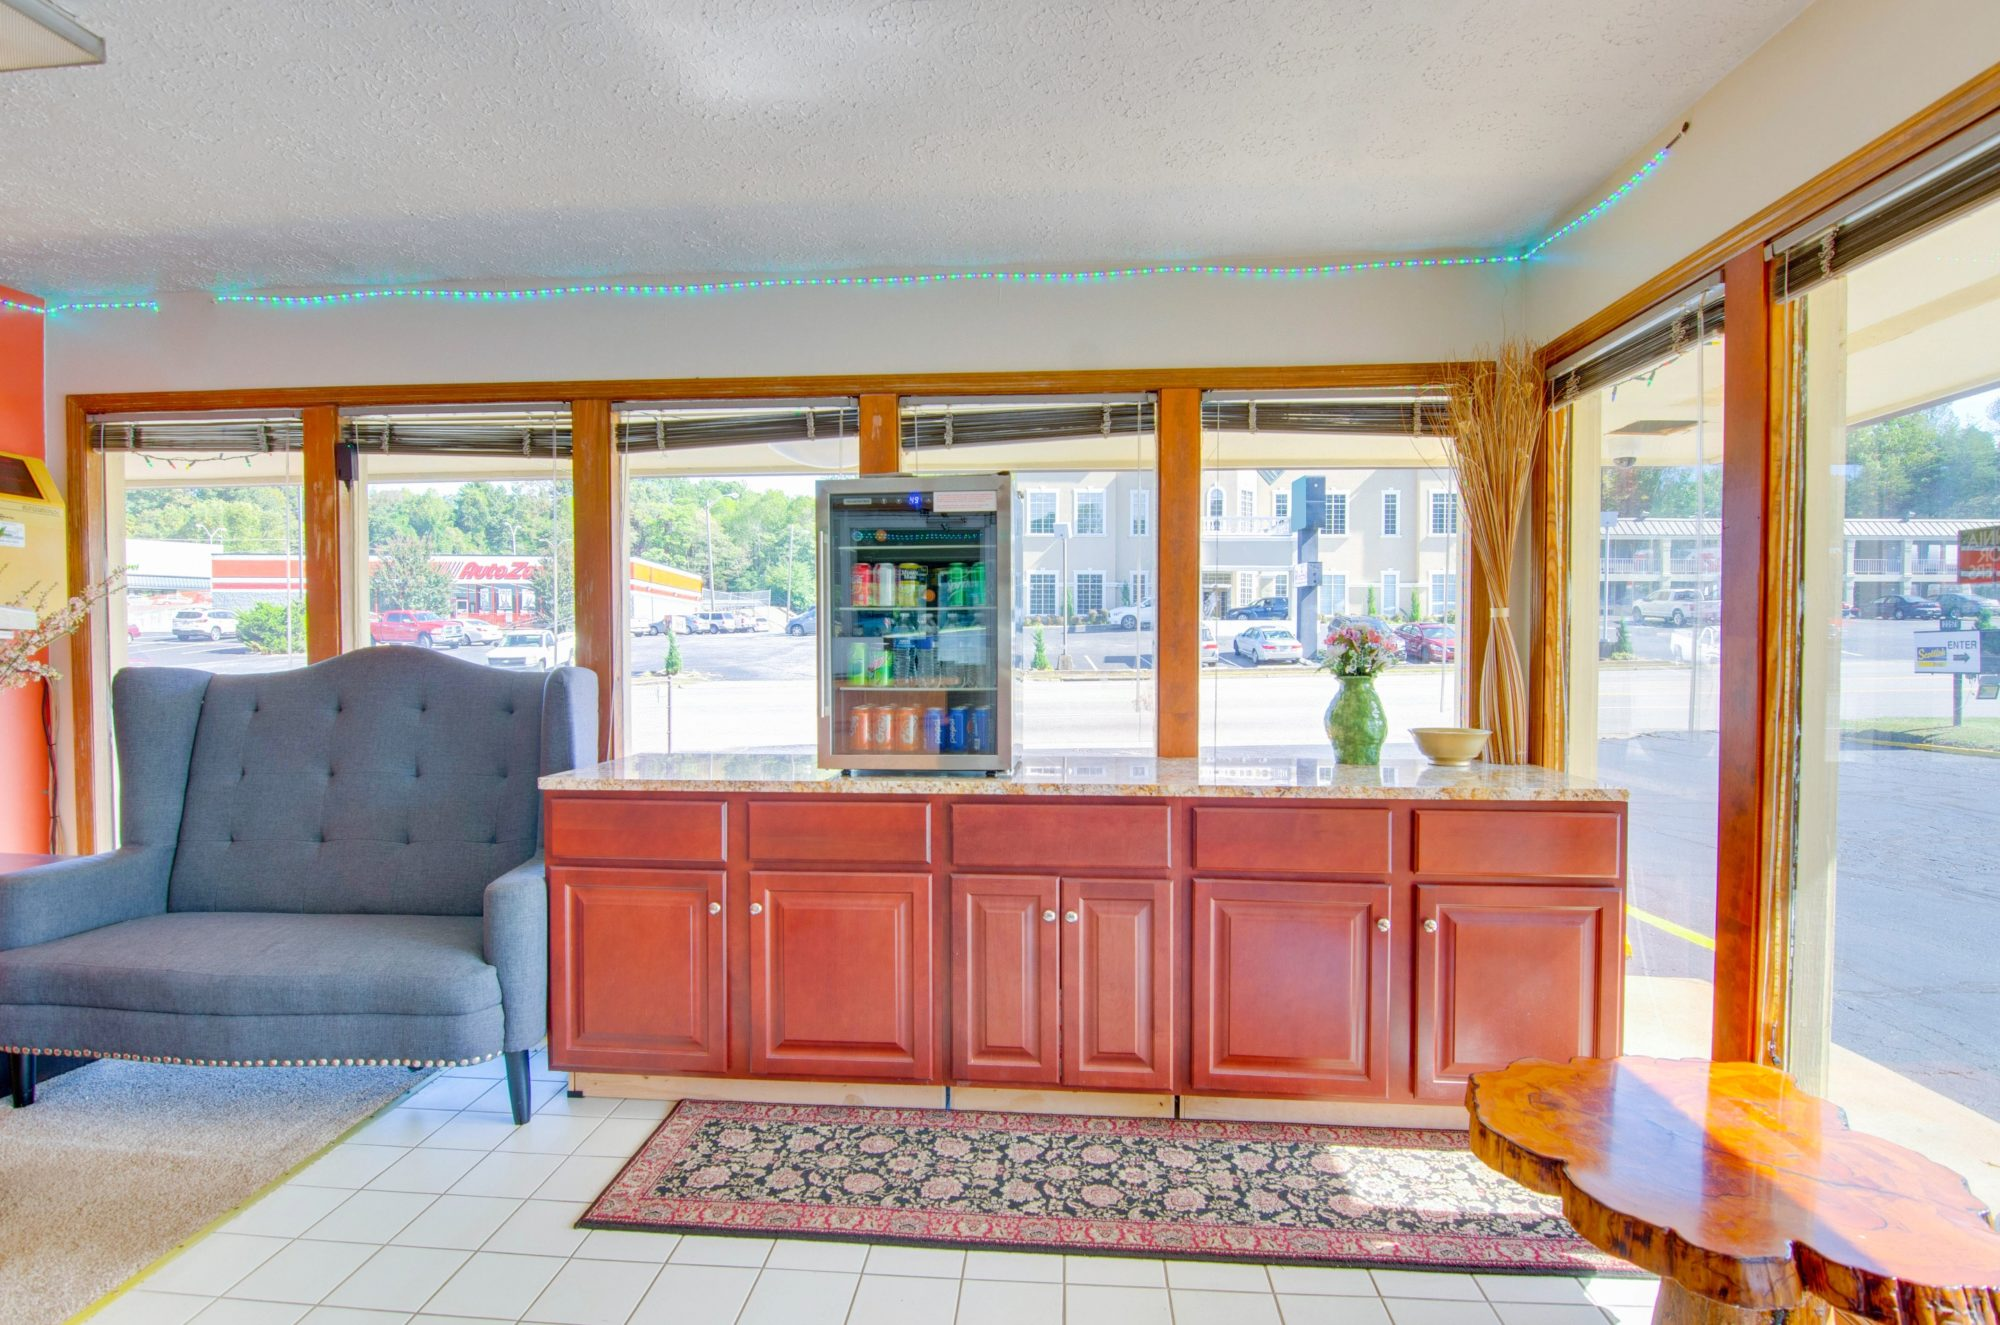 Sofa, counter with chilled soft drinks, small occasional table, tiled flooring with rug